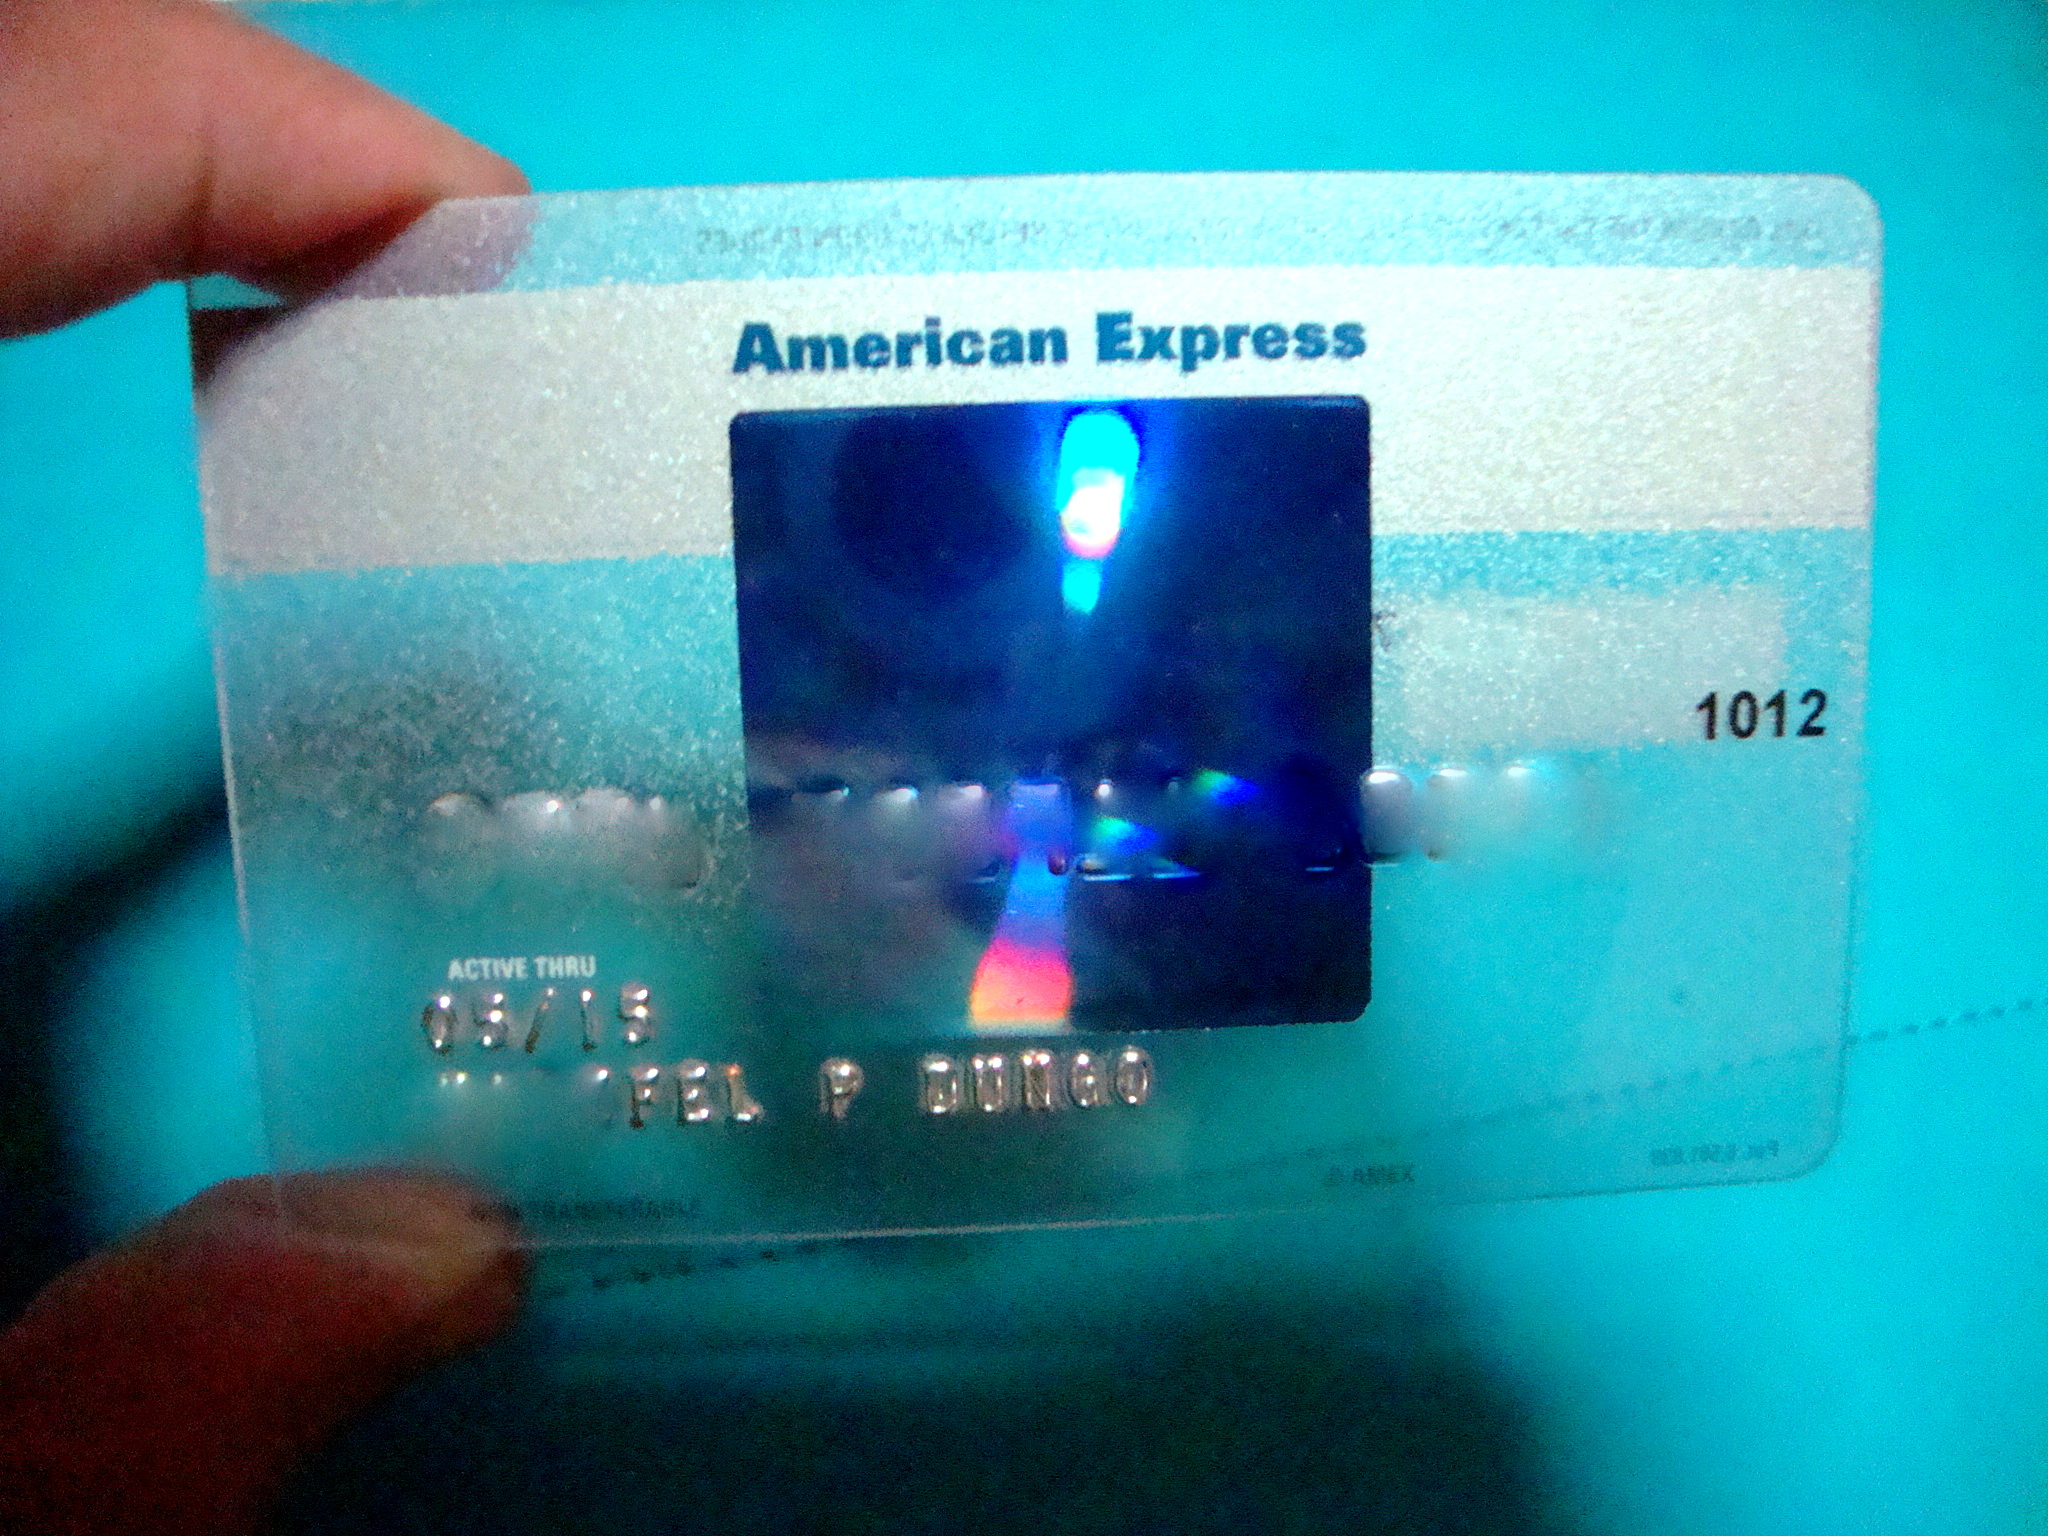 American Express In The Philippines  How I Got My Amex. Certificate Of Liability Insurance Form. Intrusion Detection System Software. Getting Car Insurance Online. Affordable Online Mba No Gmat. Vitamins That Help With Erectile Dysfunction. The Best Latex Mattress Drach Market Research. Trade Show Displays Canada Miami Seo Company. Small Business Tax Credit 2014